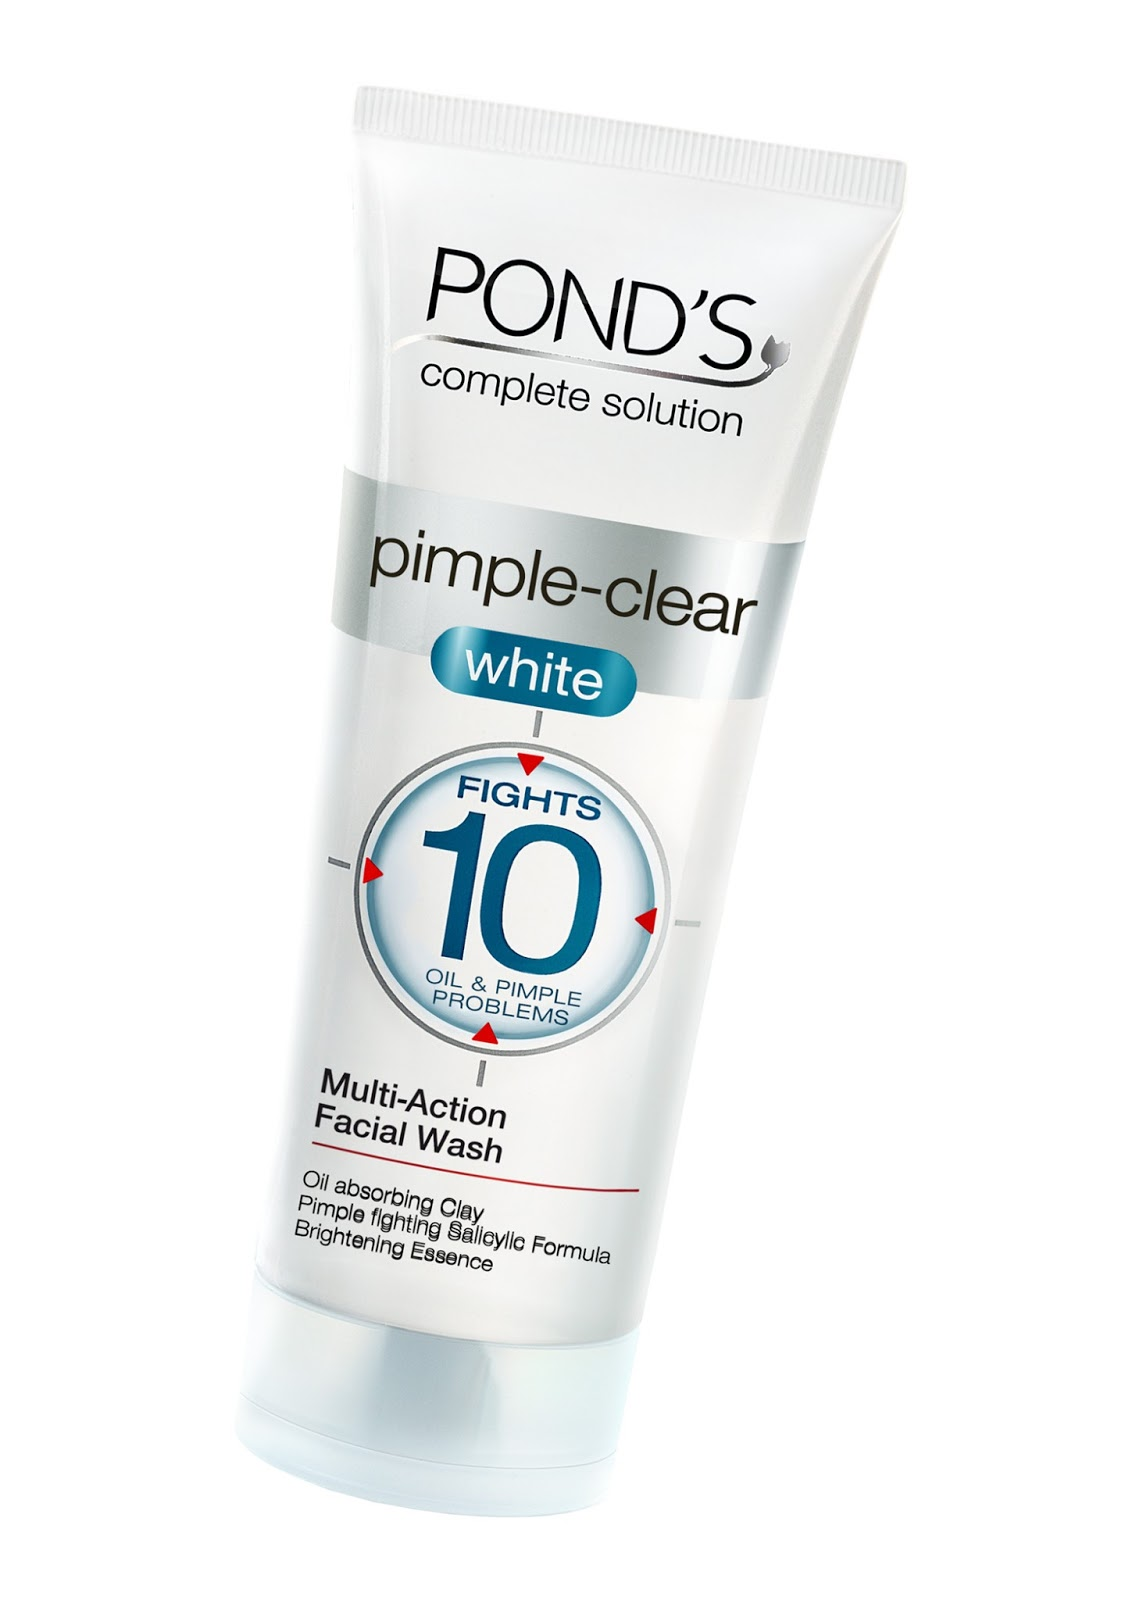 New Pond S Pimple Clear White Facial Wash A Multi Action Solution For Ten Oil And Pimple